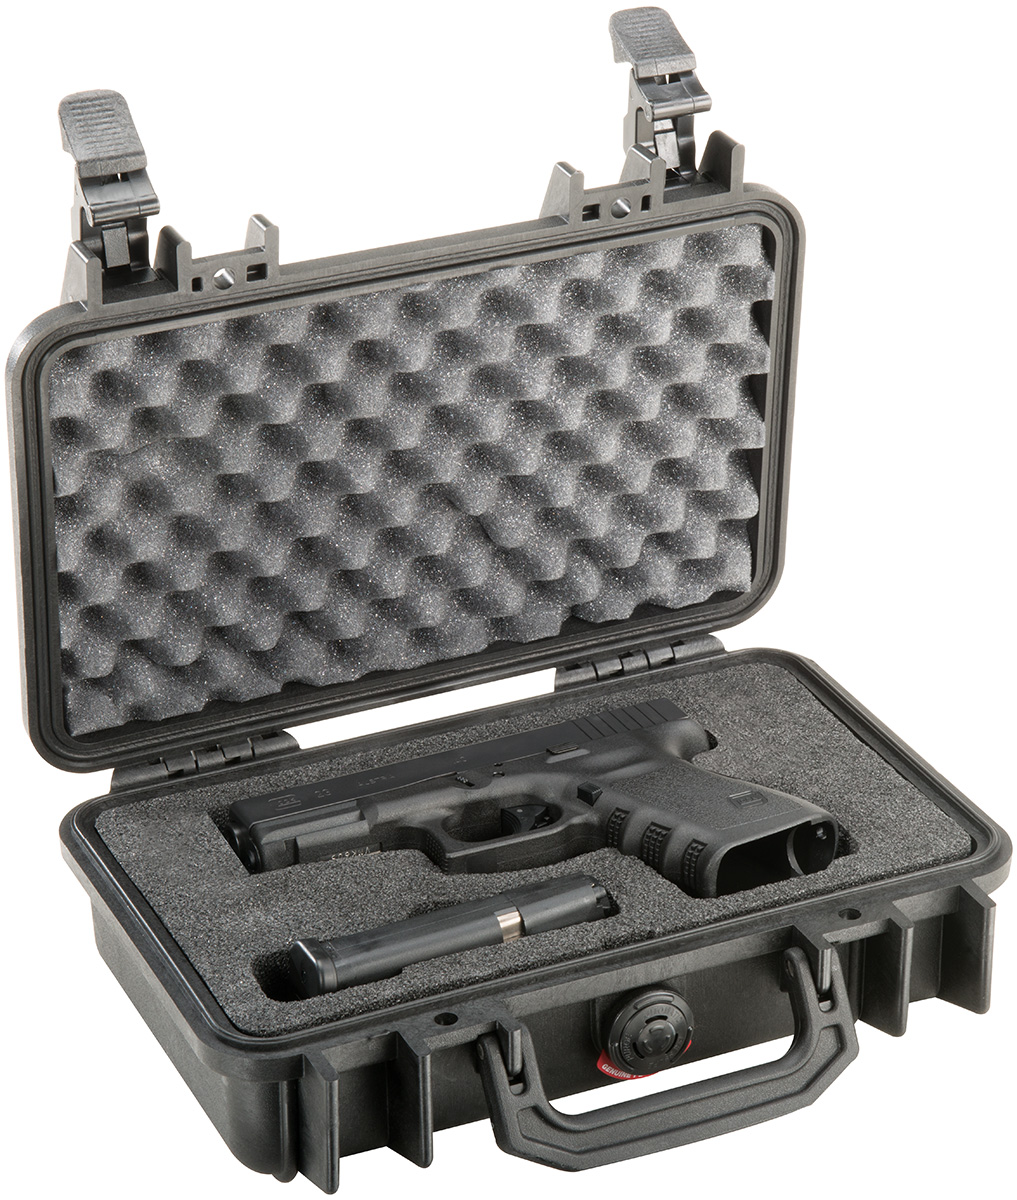 pelican peli products 1170 pistol gun glock hard case